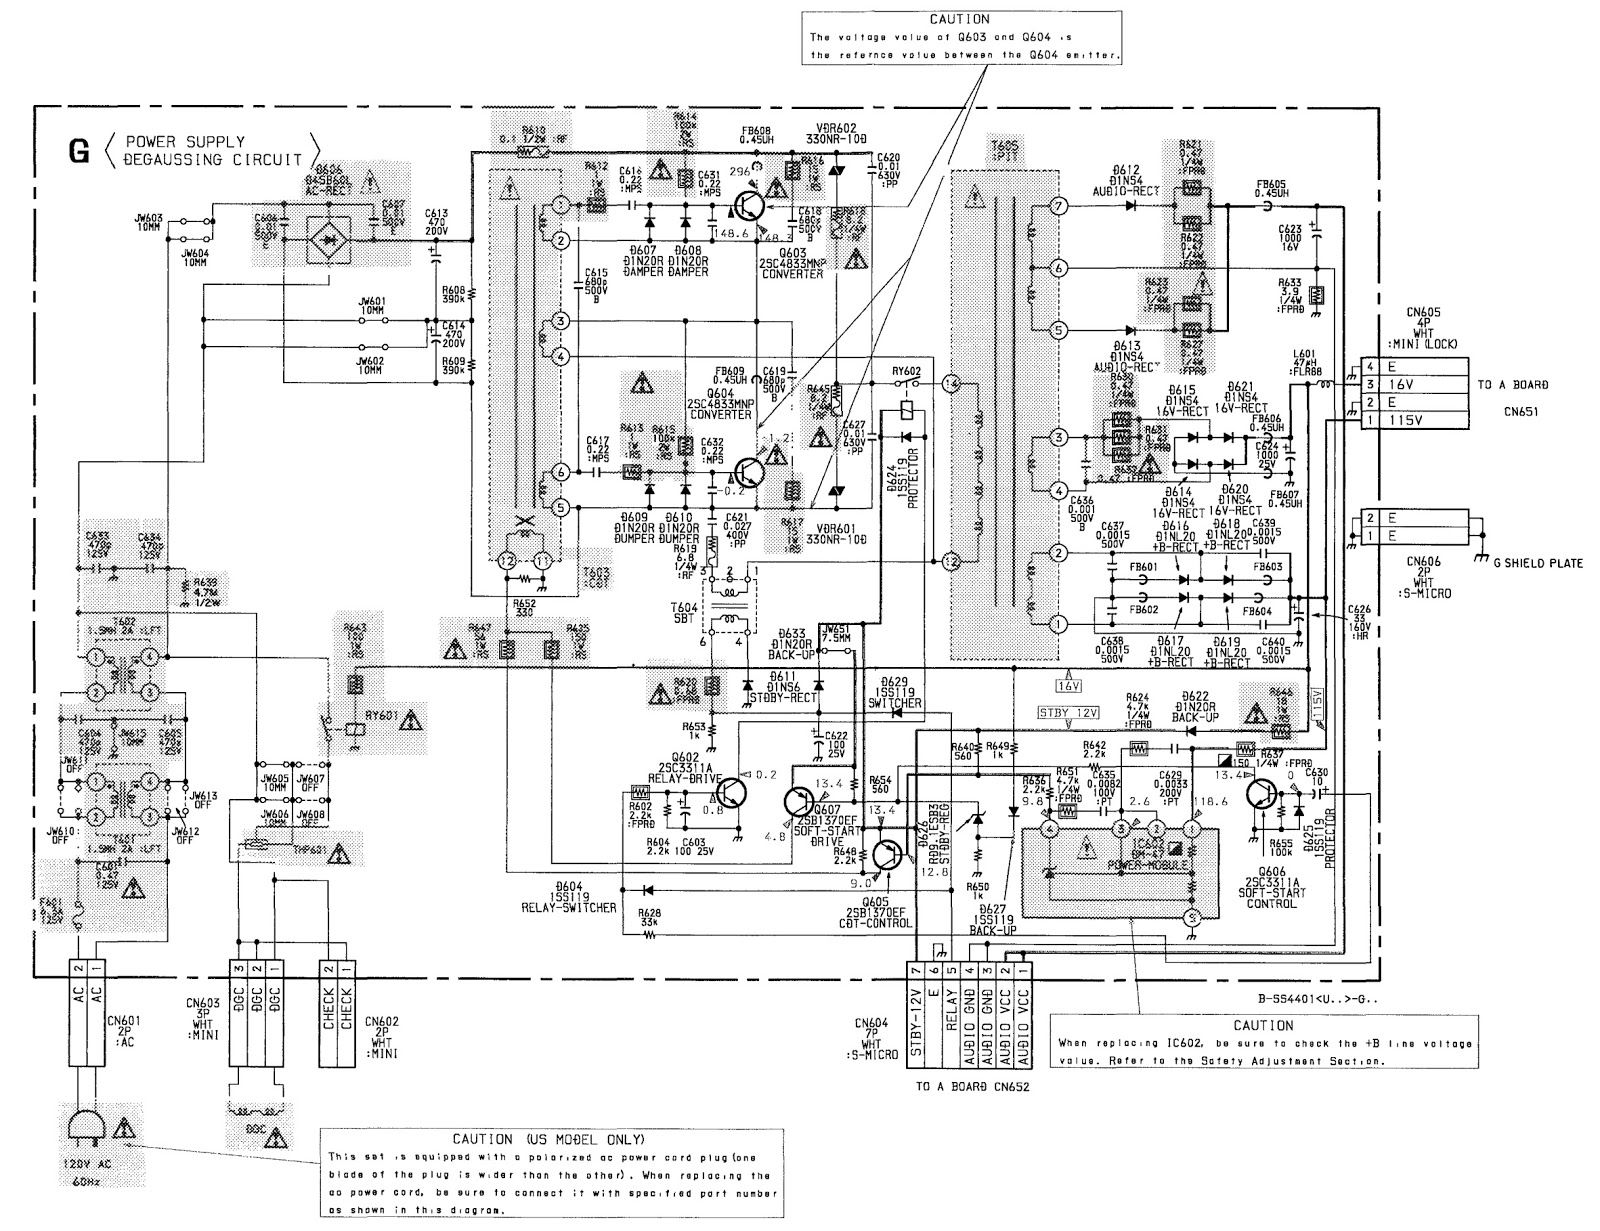 diagram  sony bravia schematic diagram full version hd quality schematic diagram